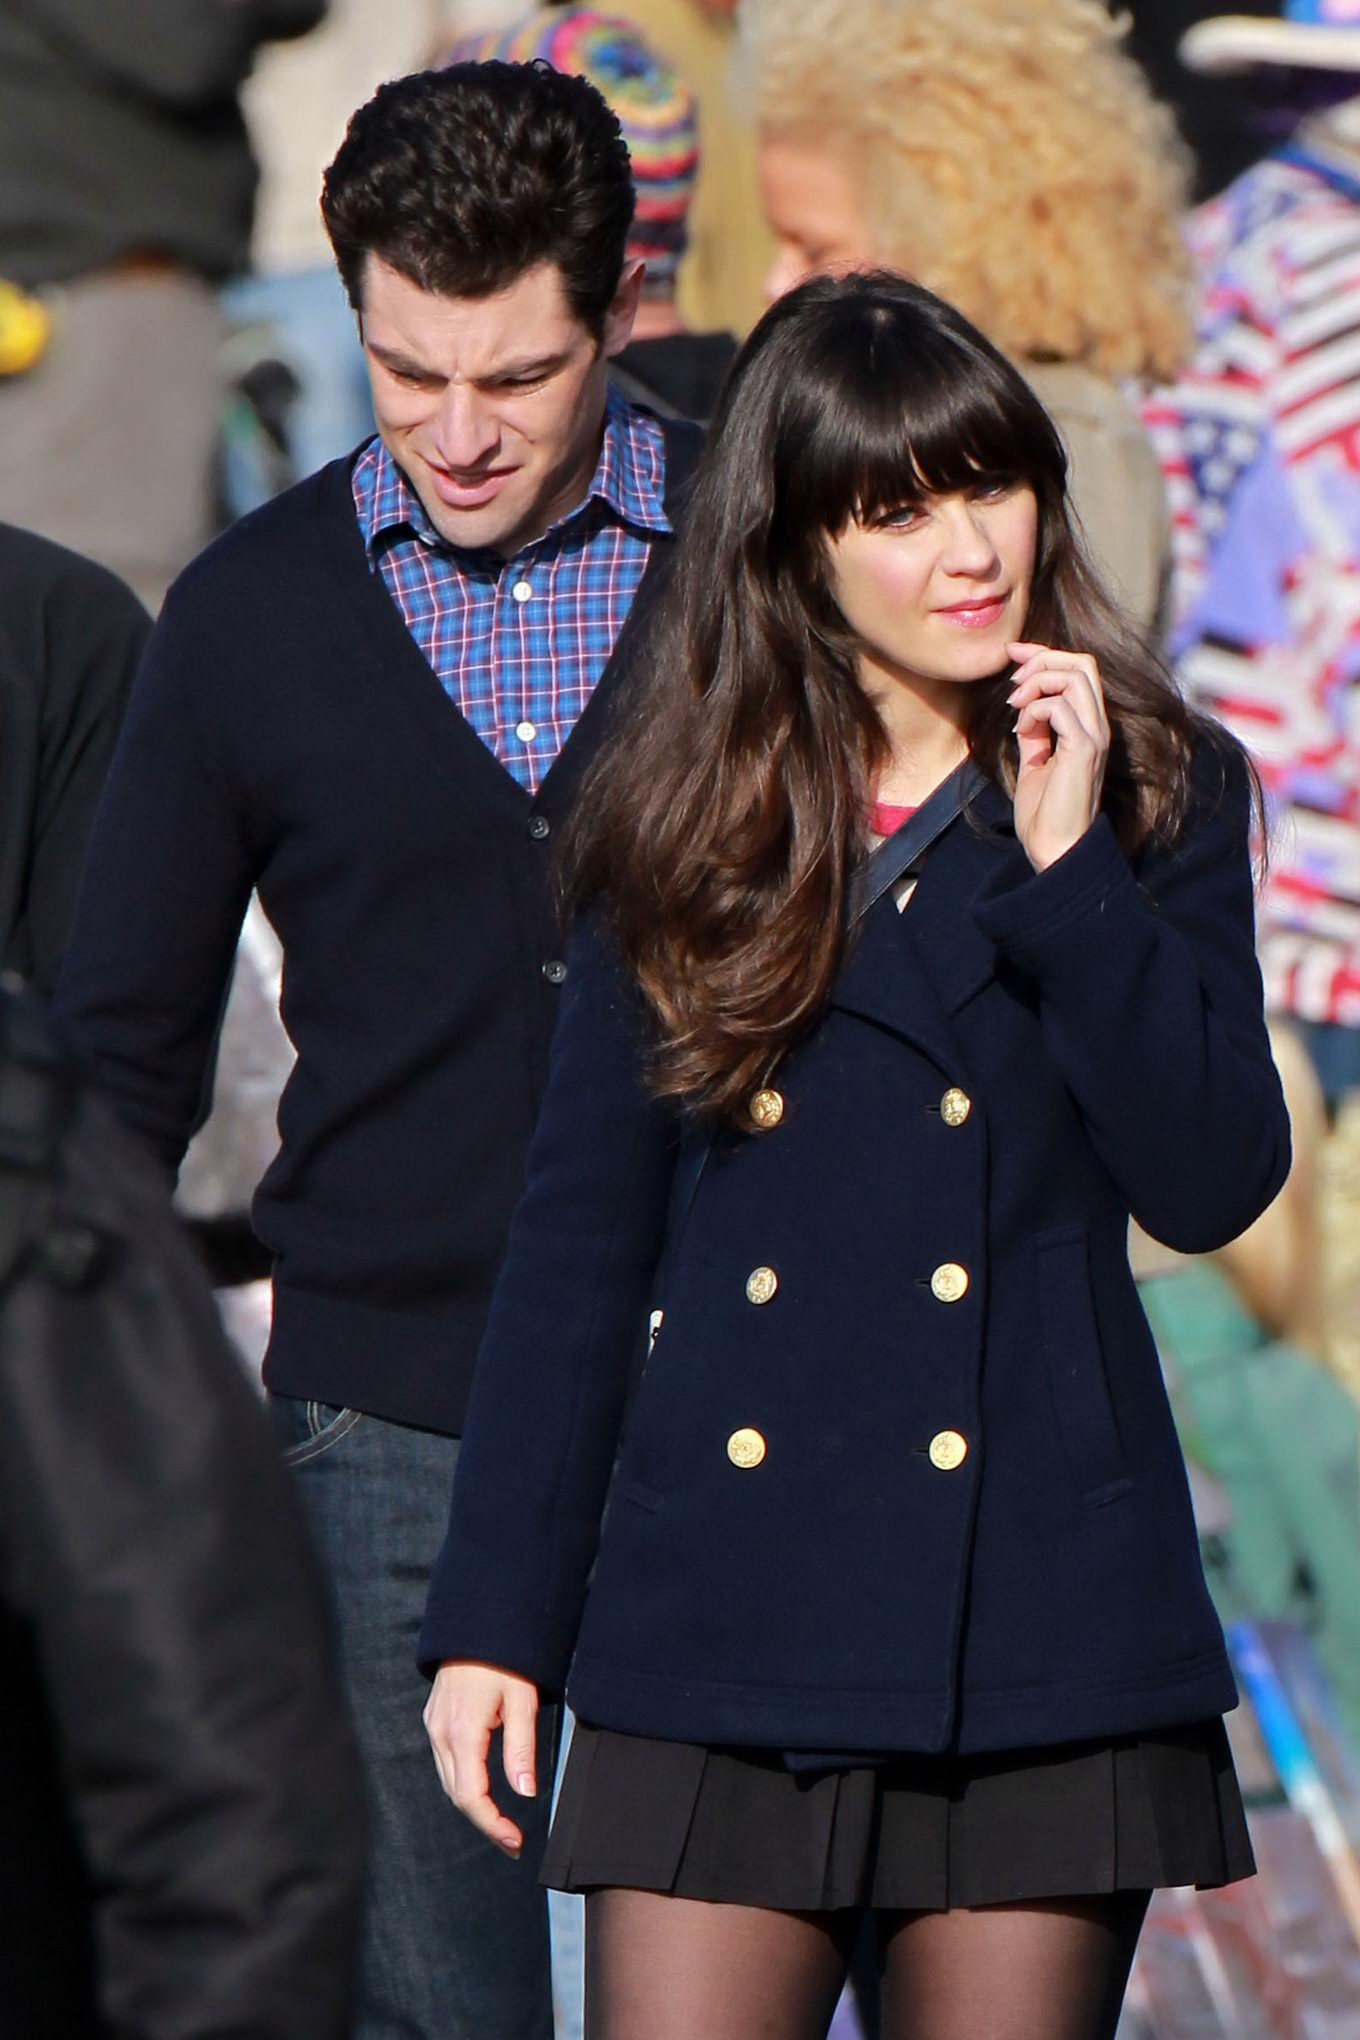 That can zoey deschanel upskirt there